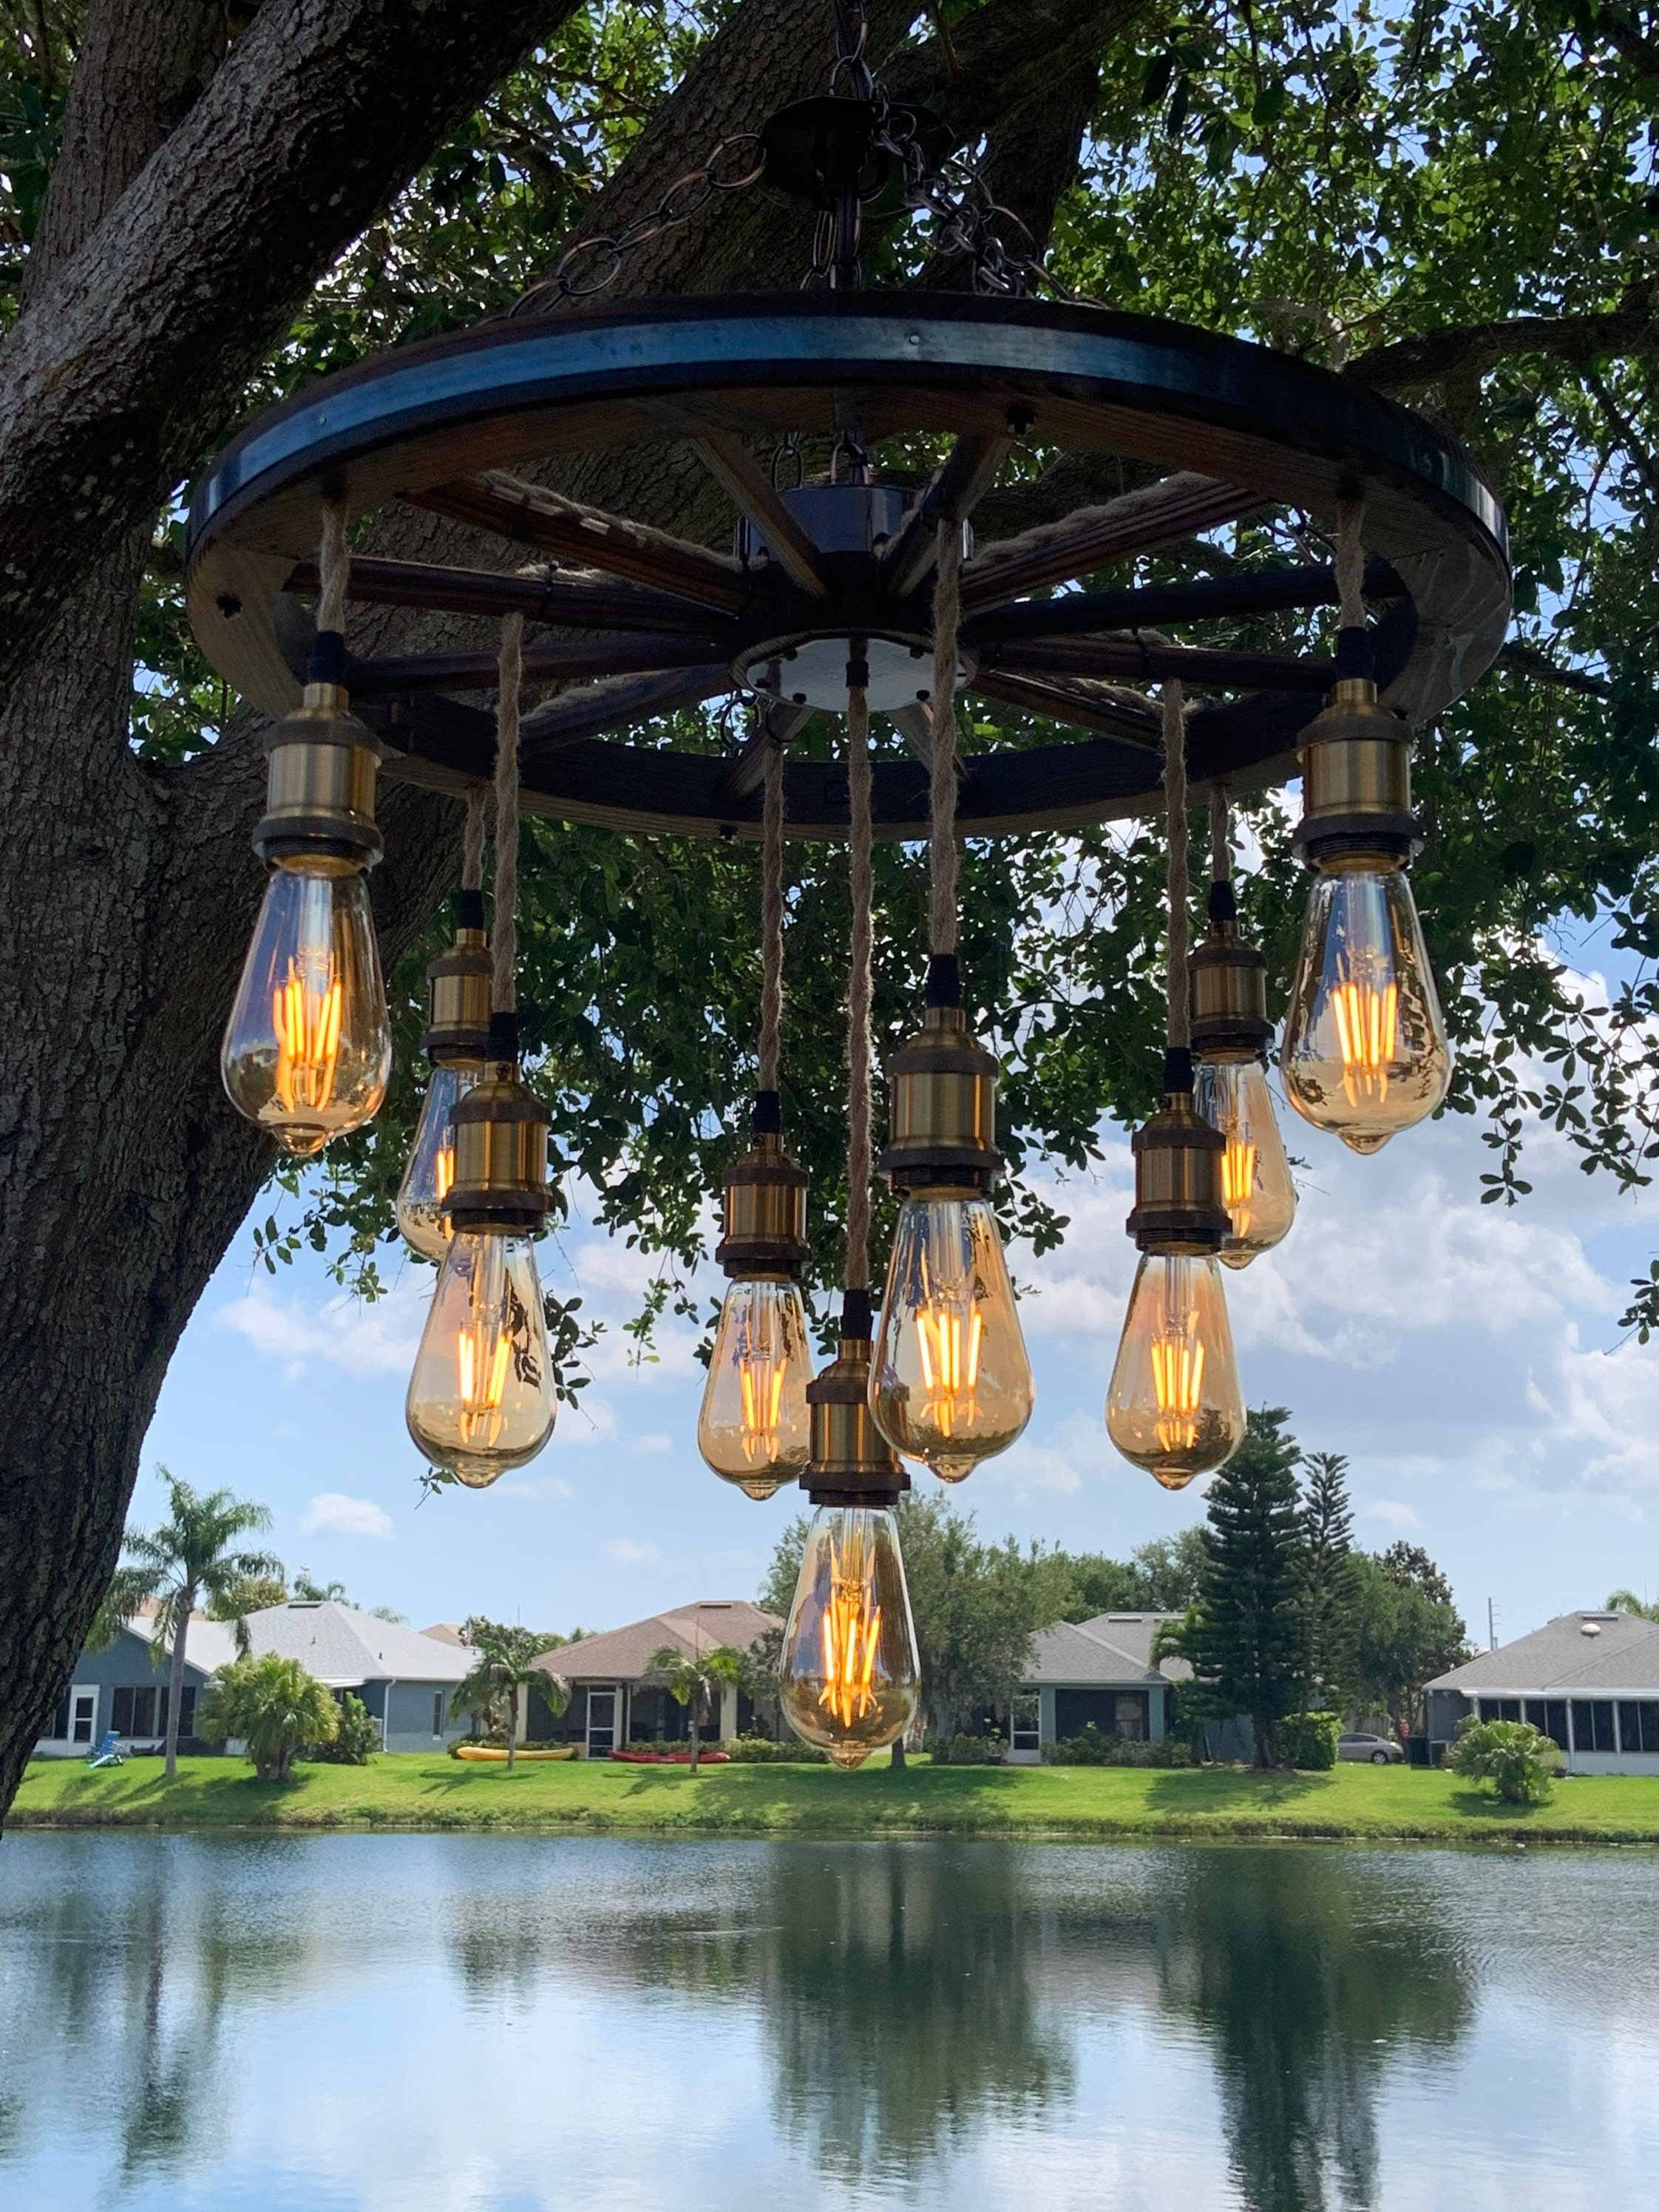 Wagon Wheel Chandelier with 3 tiers of Vintage Rope Lights